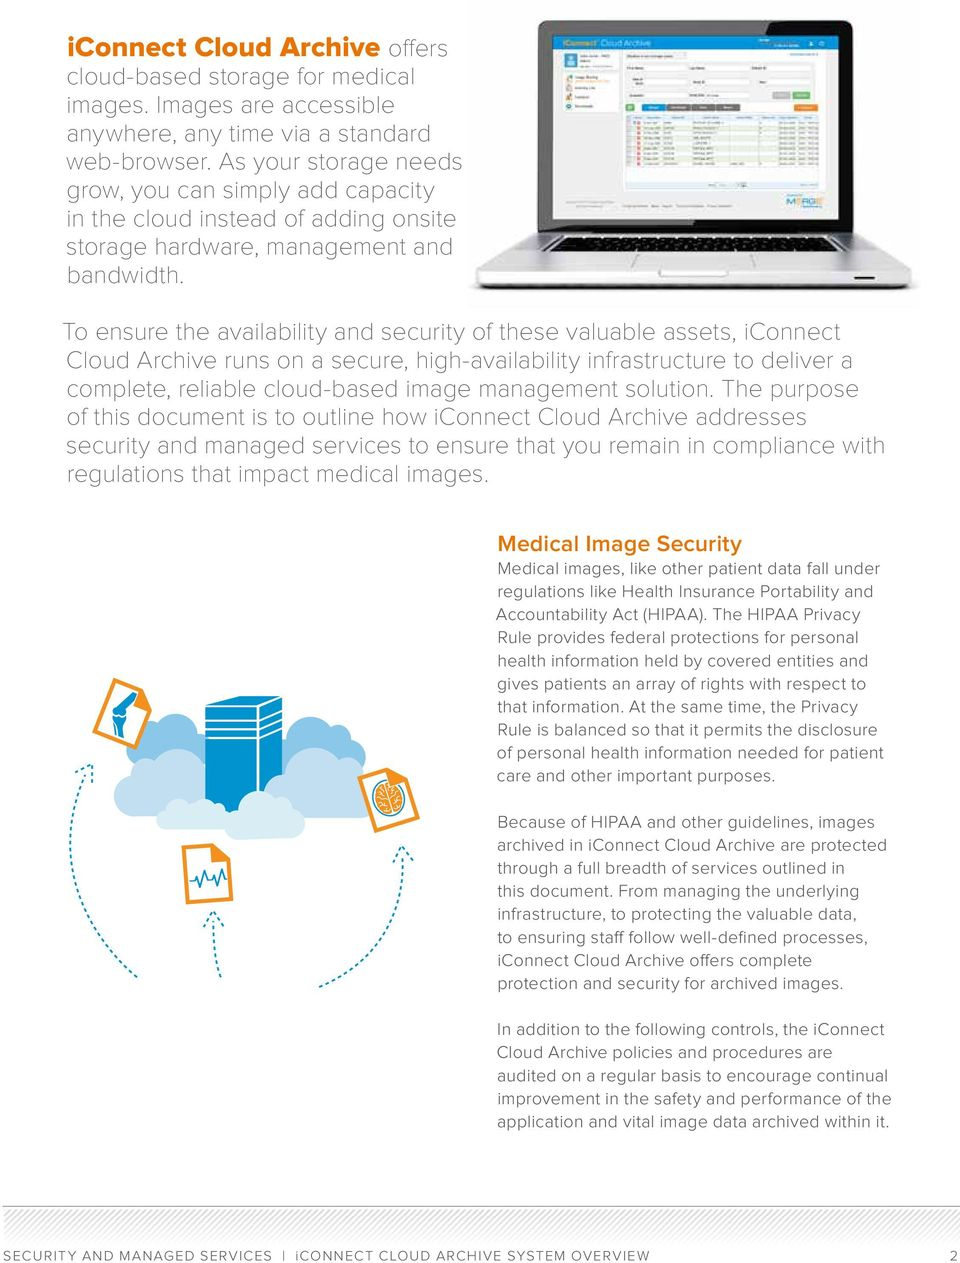 To ensure the availability and security of these valuable assets, iconnect Cloud Archive runs on a secure, high-availability infrastructure to deliver a complete, reliable cloud-based image